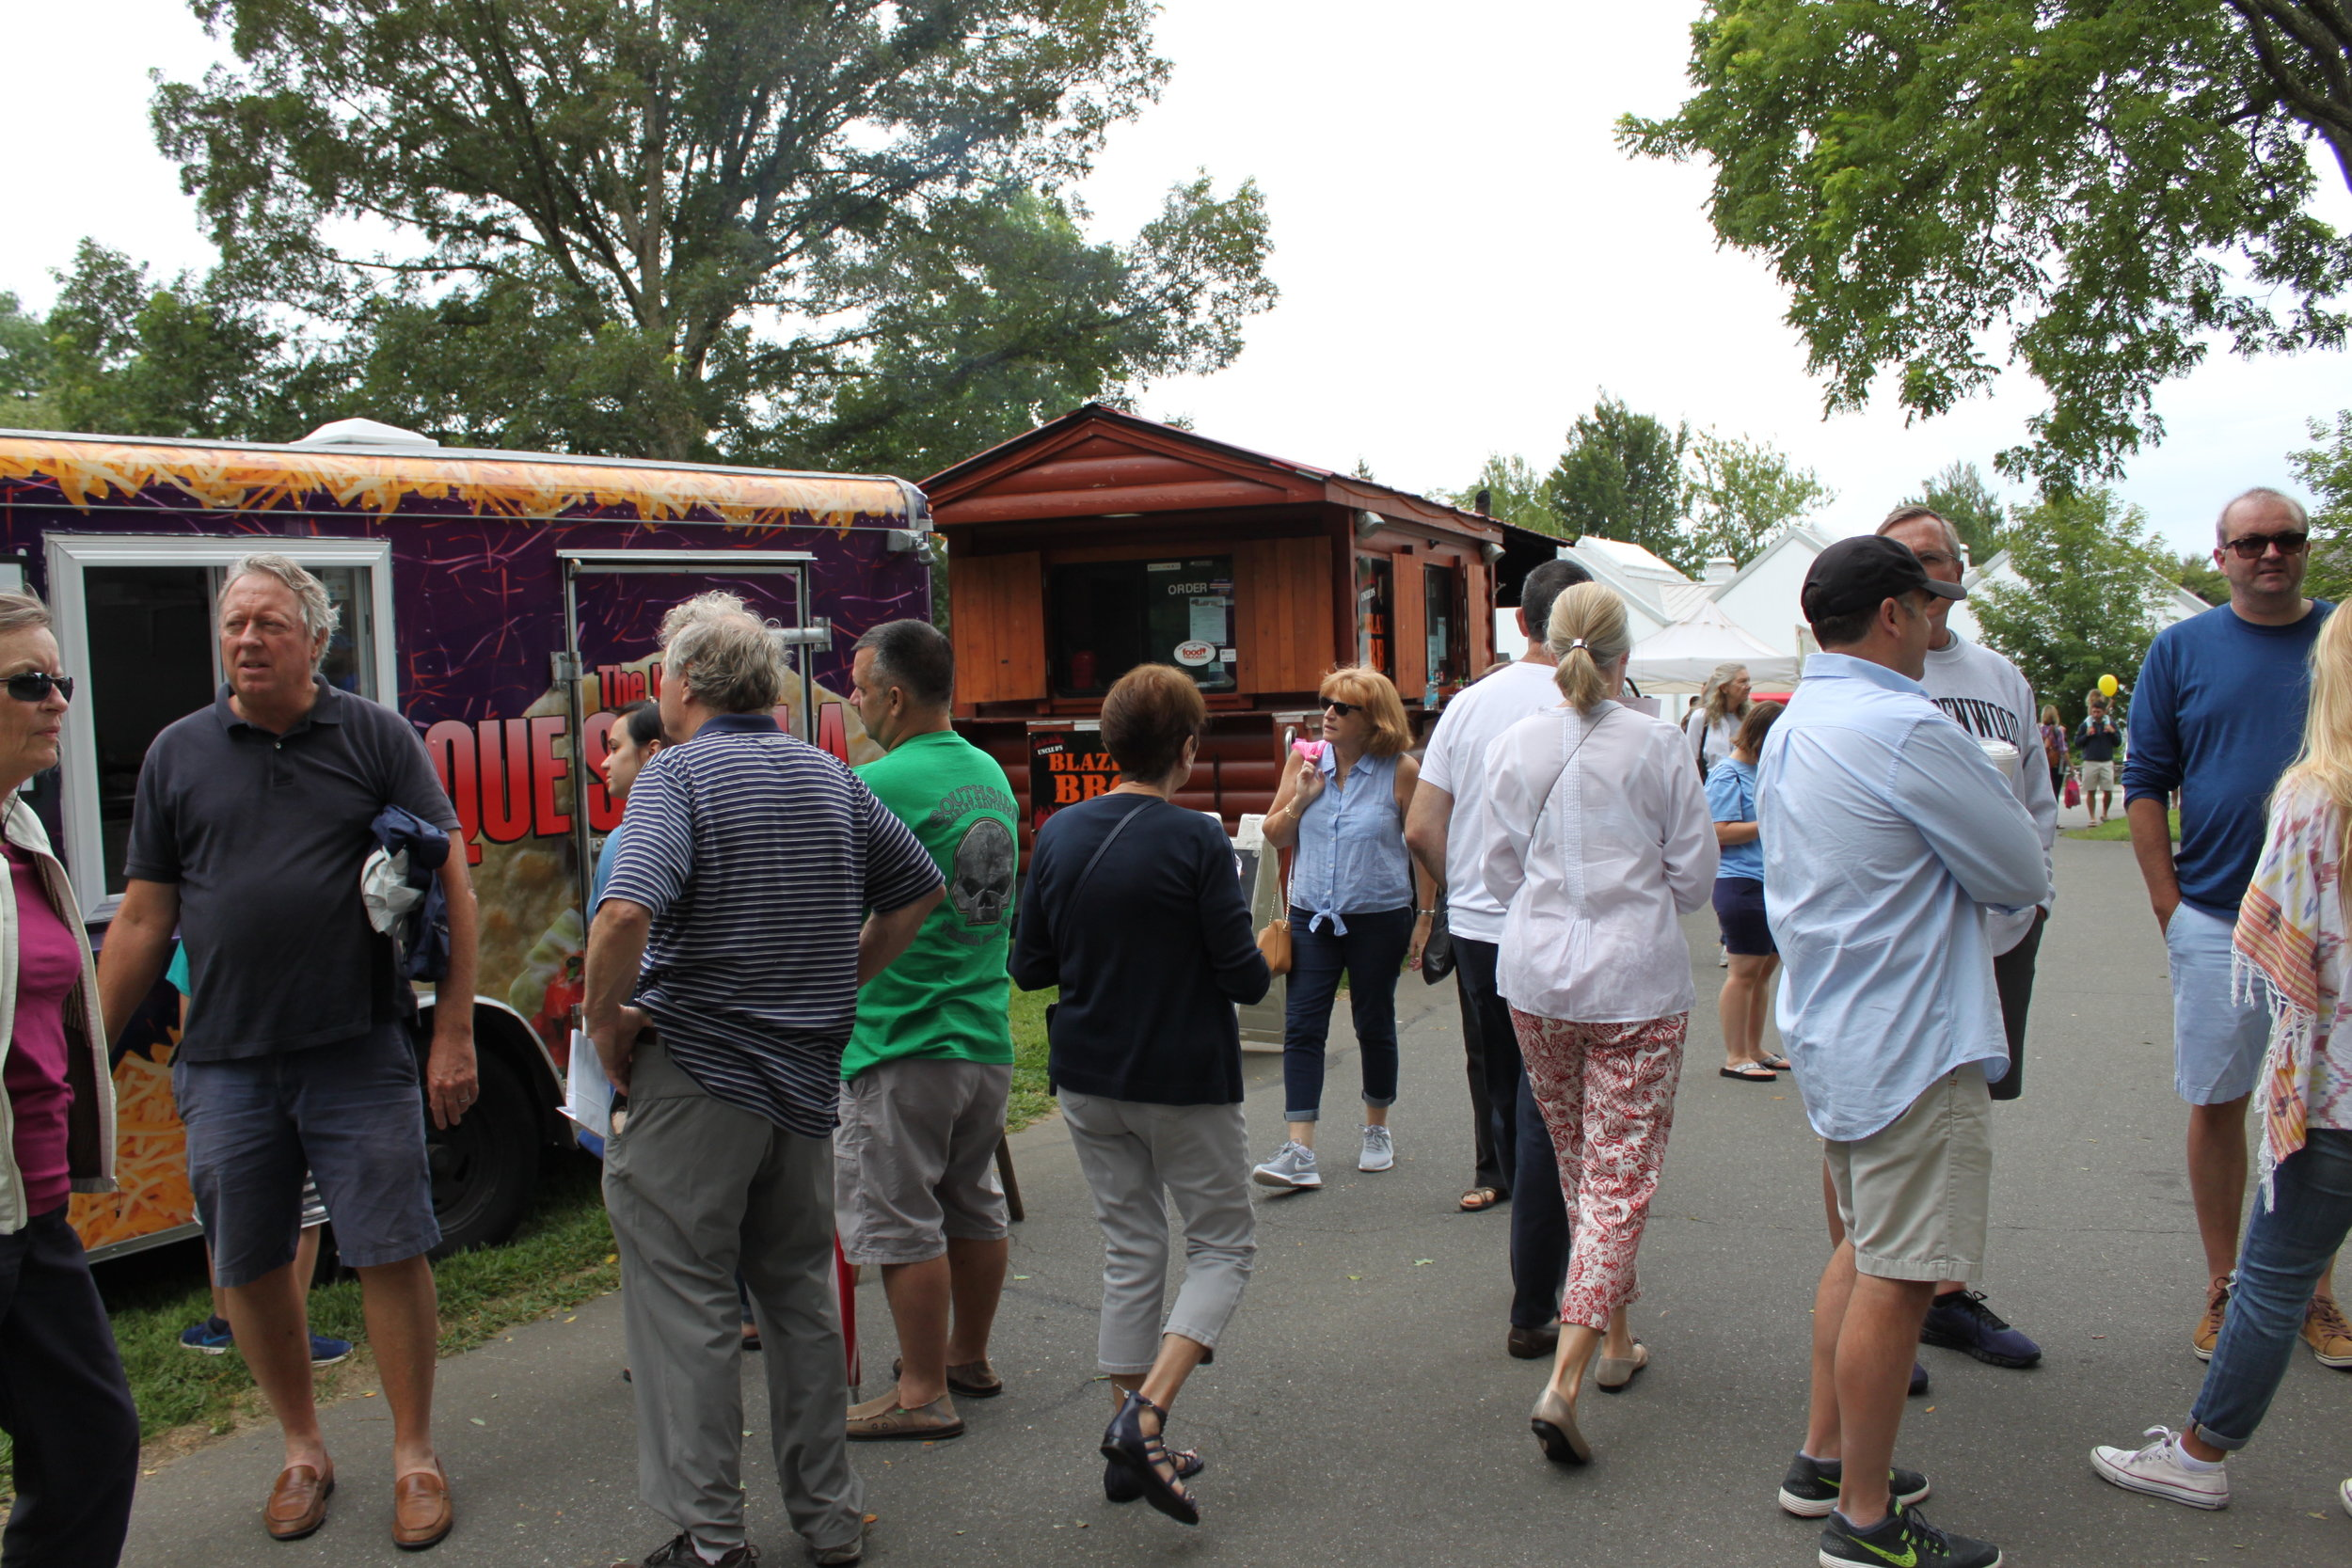 Bohemian Street Fair - You'll find a wide selection of great products from farmers, crafters, and artisans on the front lawn of the Florence Griswold Museum from 9am to 3pm. When its time for a break, grab a shady spot near the Spruce tree and choose a food truck for your lunch.